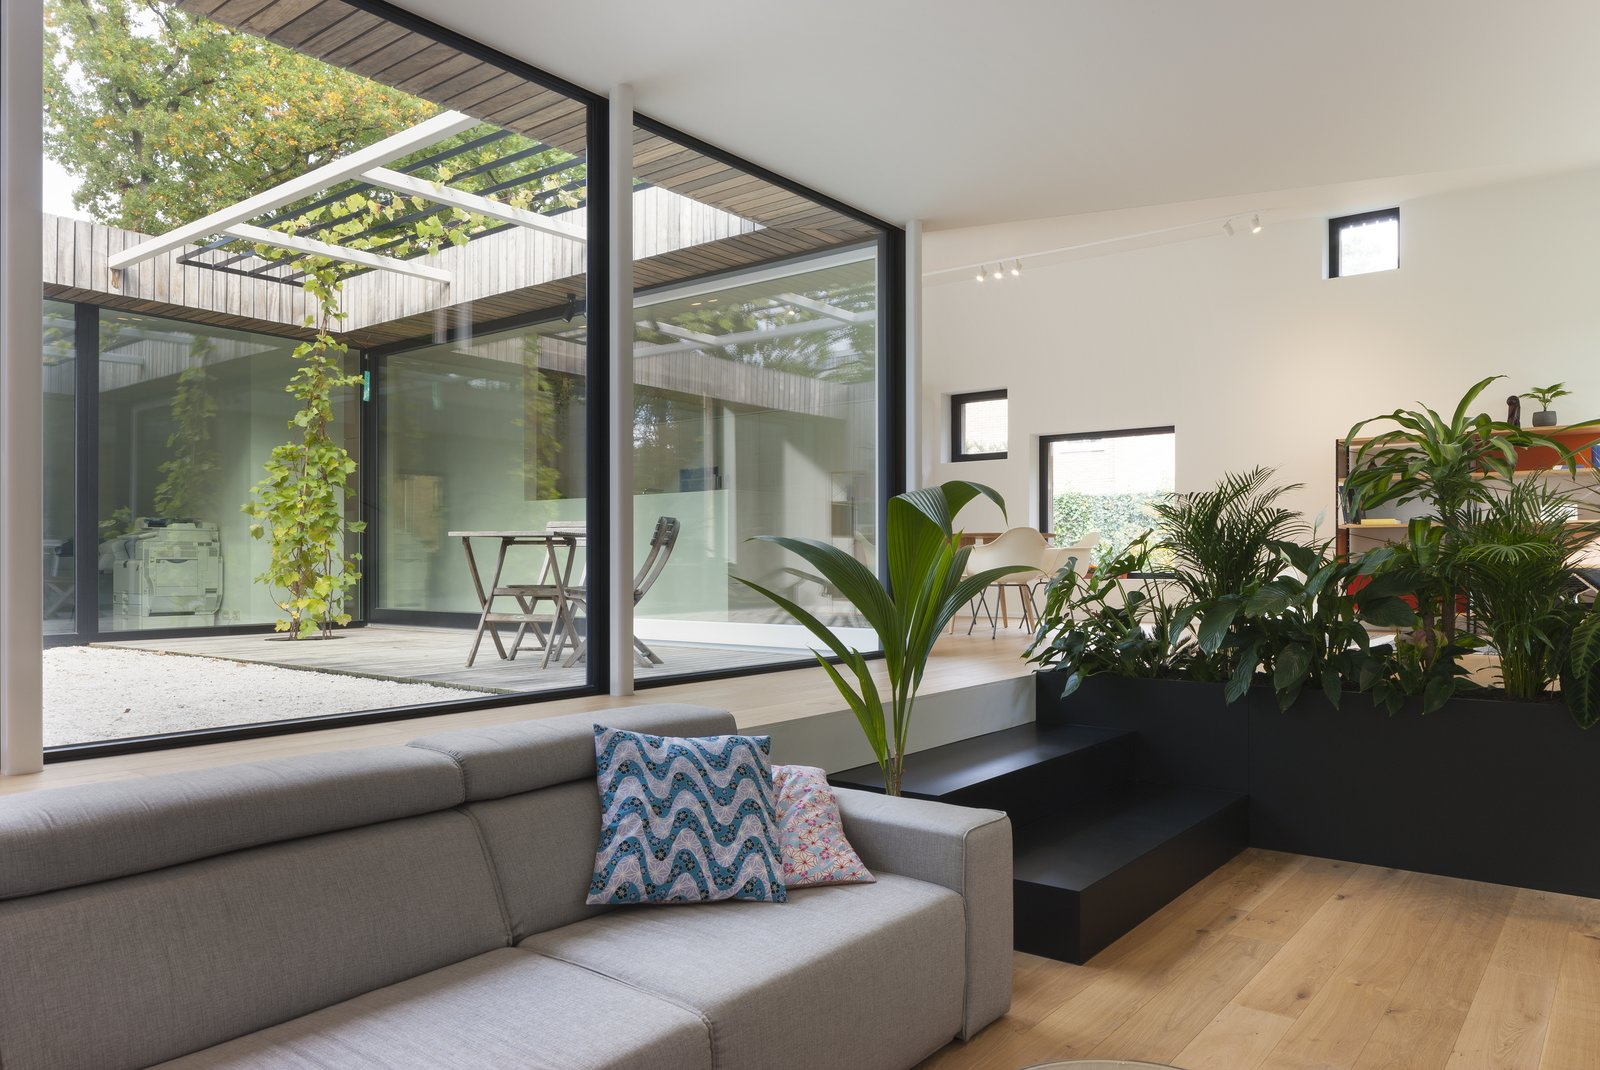 A black planter with ferns separate the living lounge from the dining area.